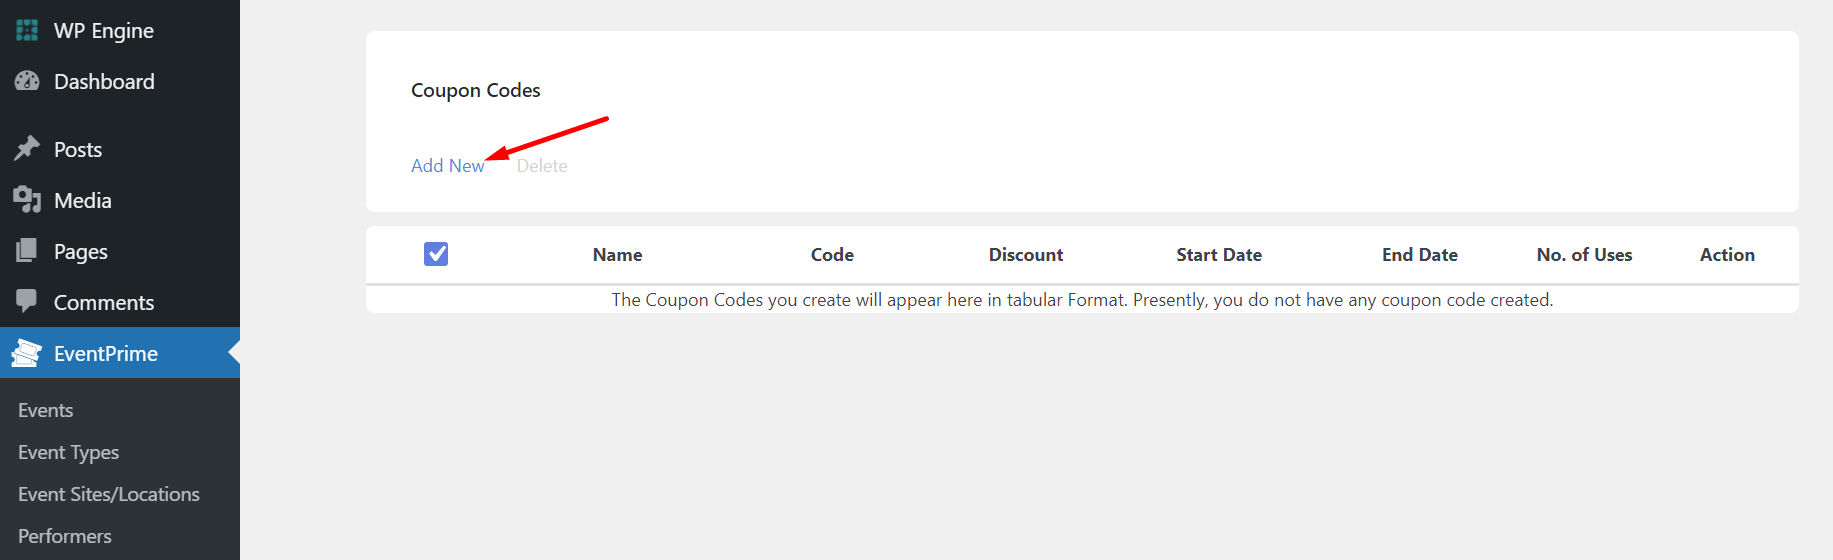 create coupon codes